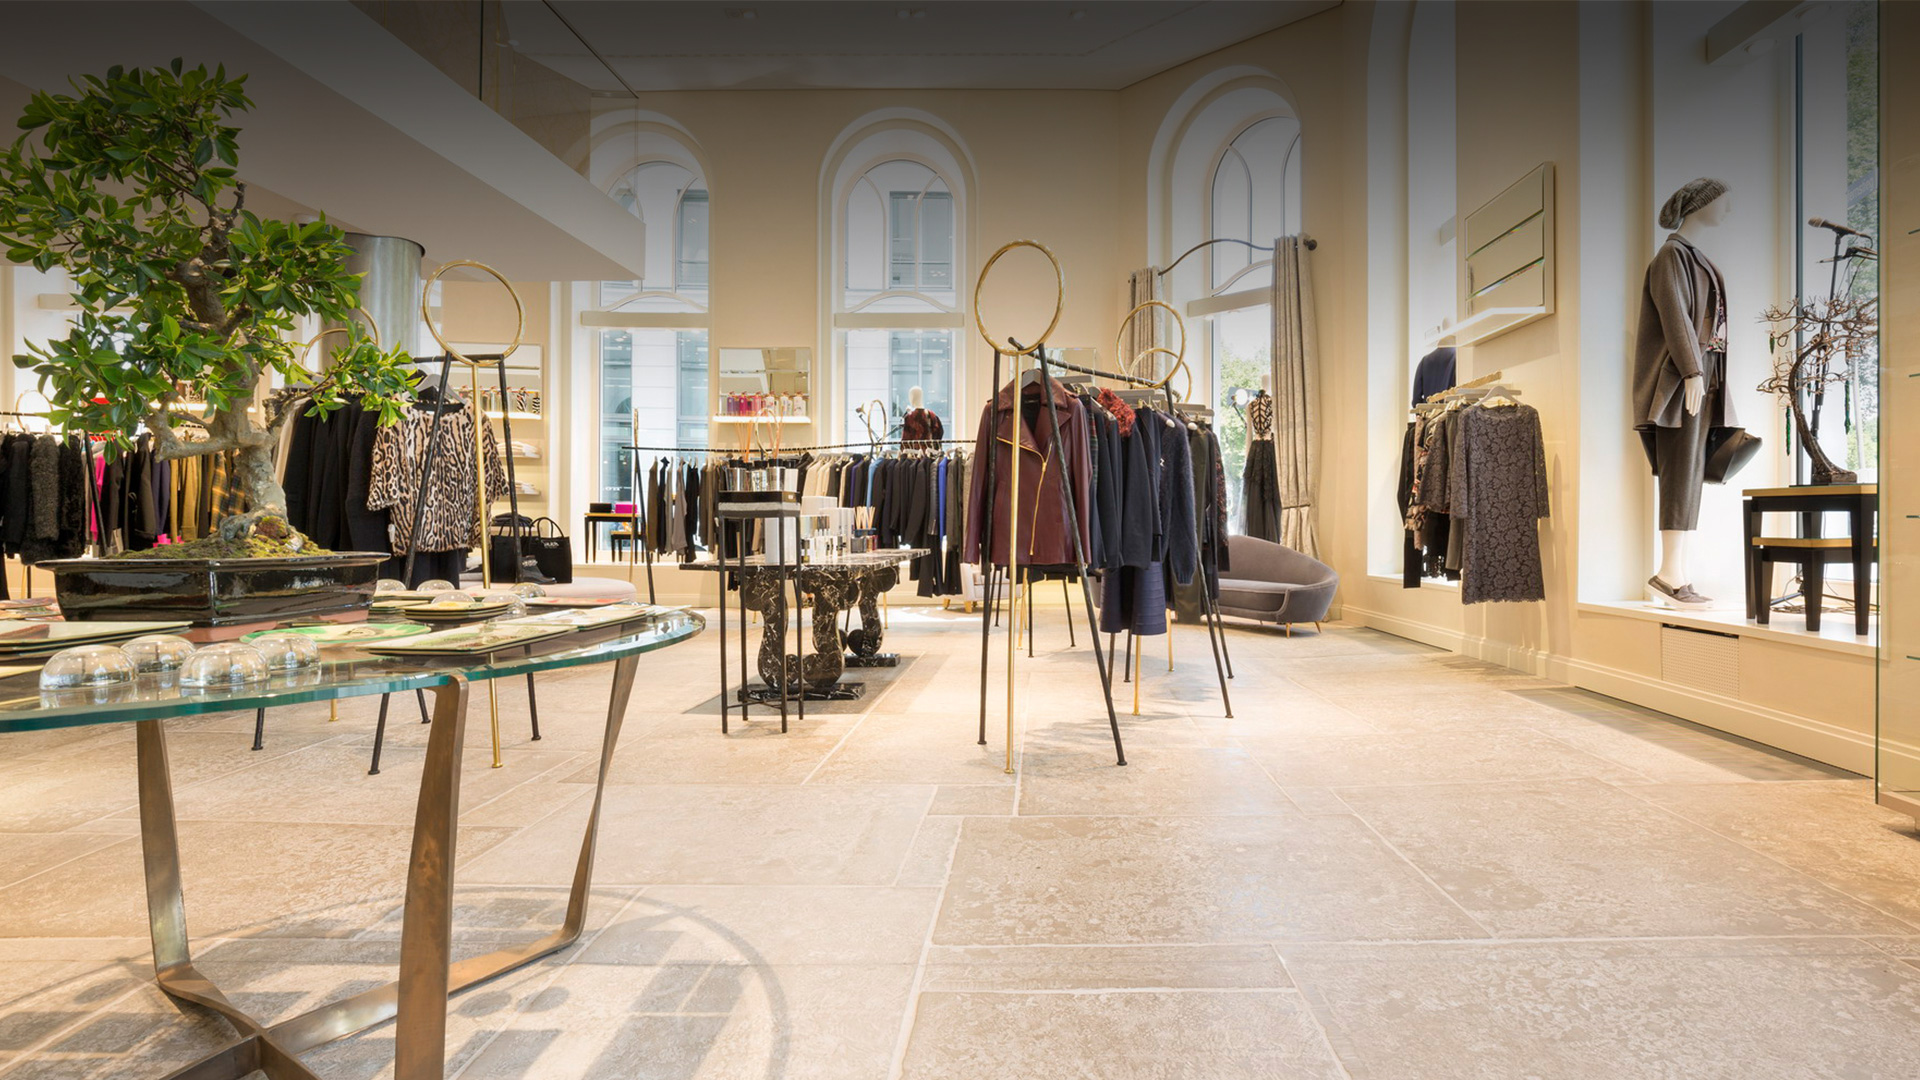 Luxury shopping in hamburg apropos the concept store for Interior designer hamburg